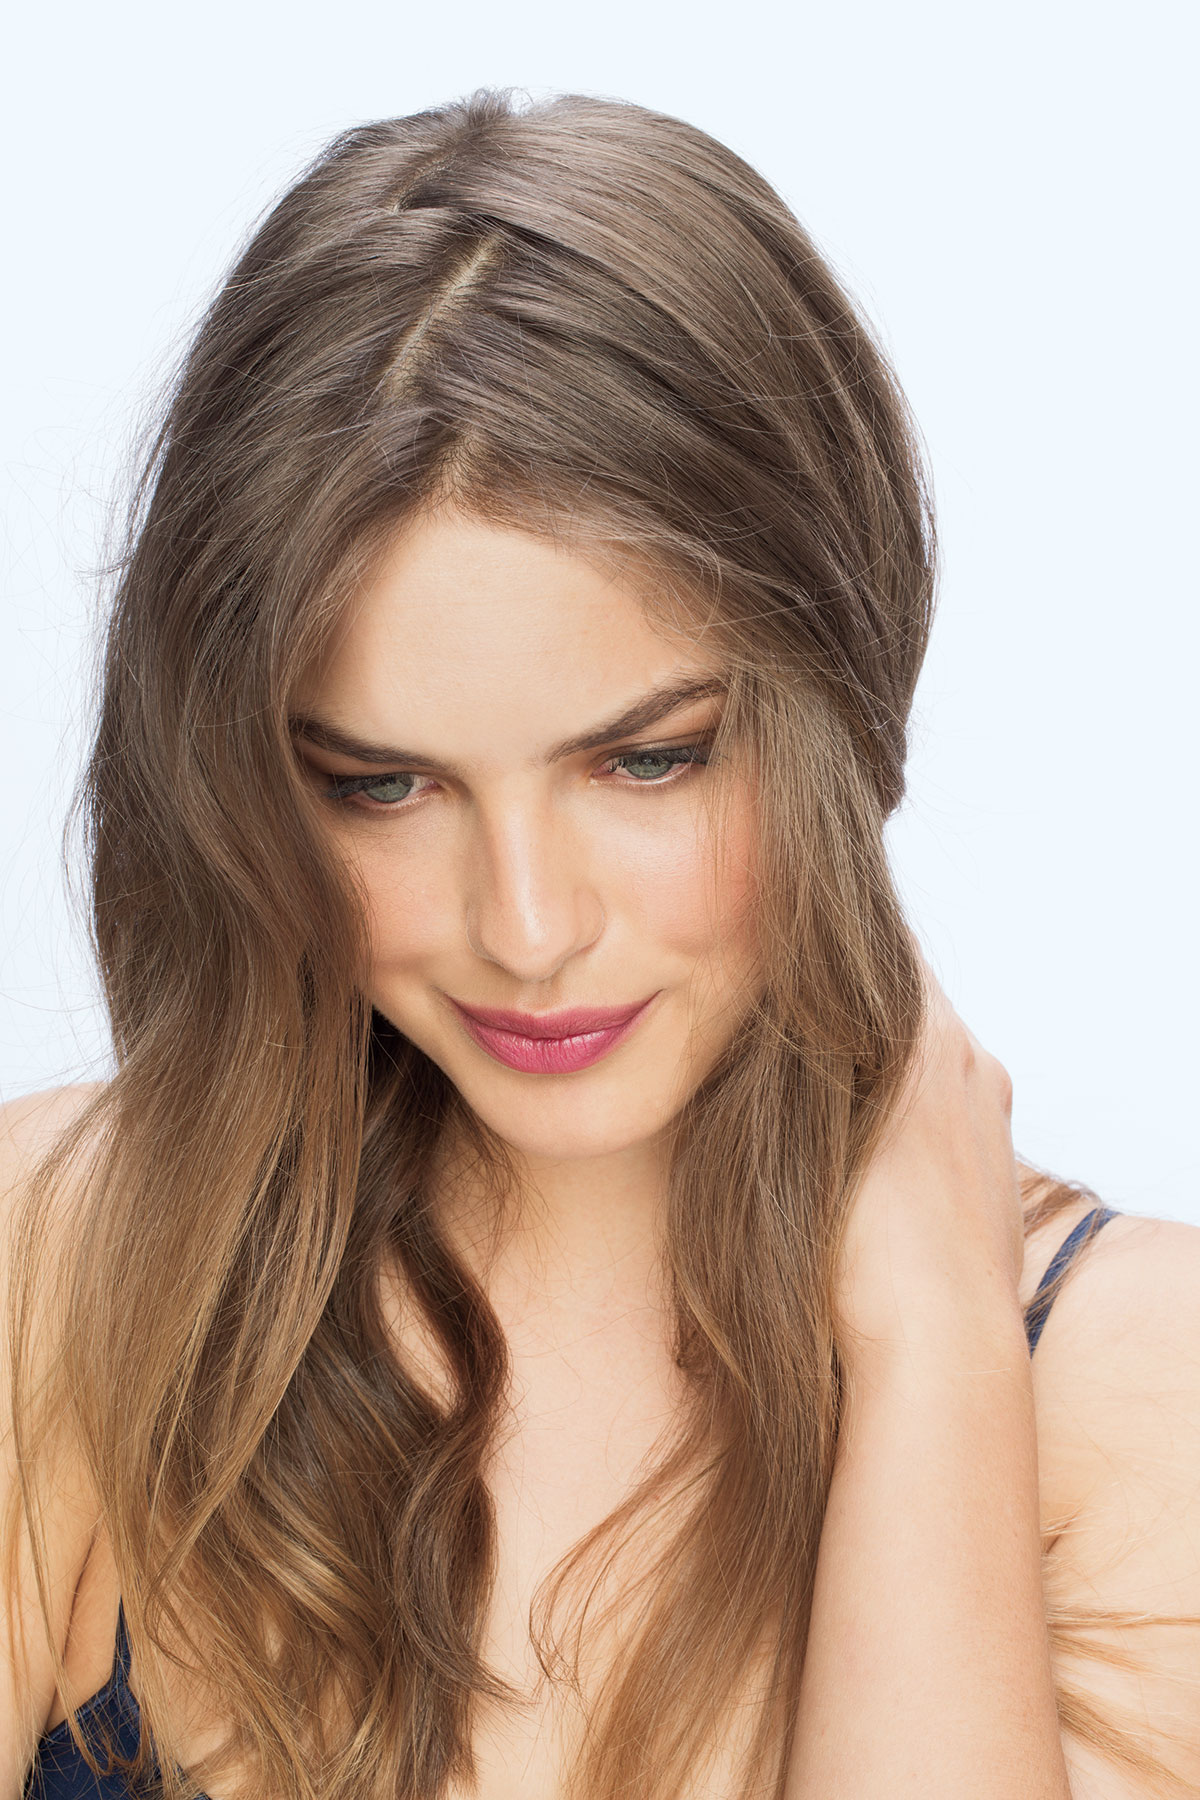 Model with zigzag part